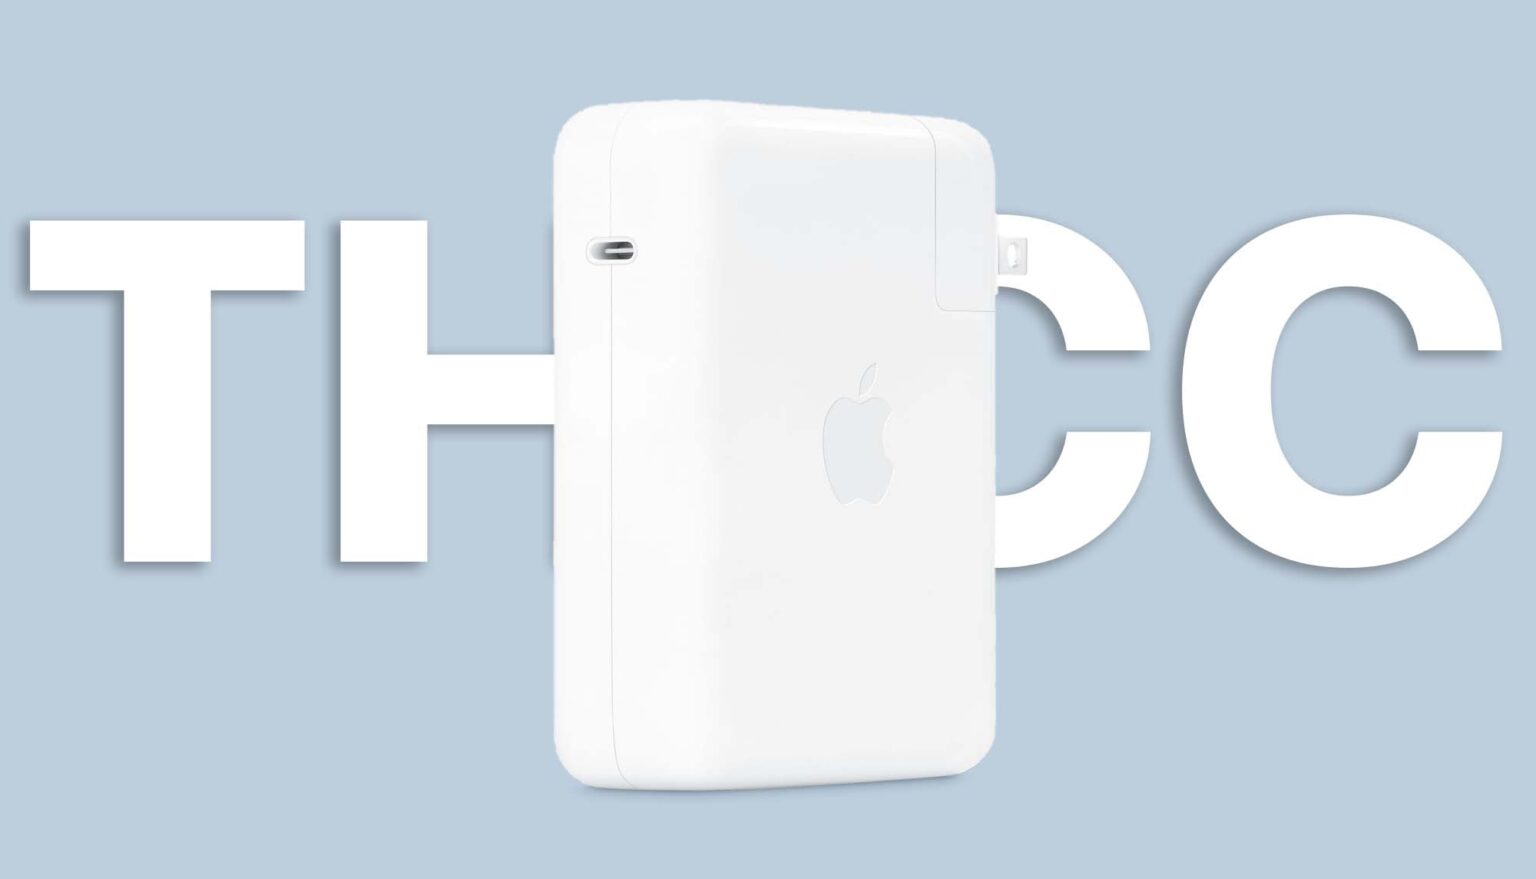 Apple's very thick 140W Charging block